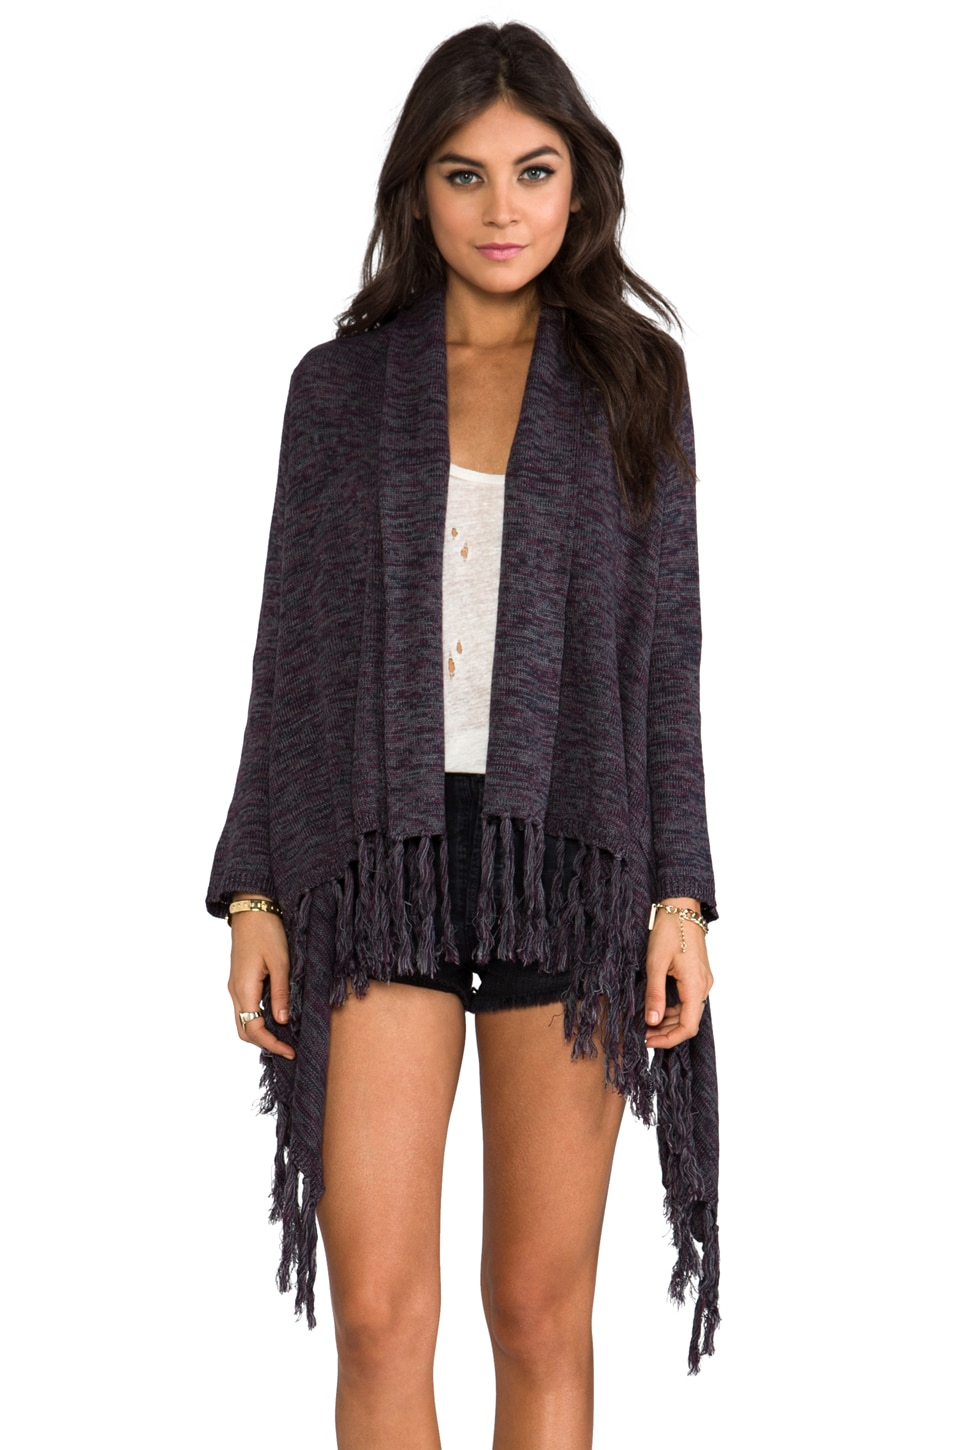 Gypsy Junkies Formosa Fringe Sweater in Heather